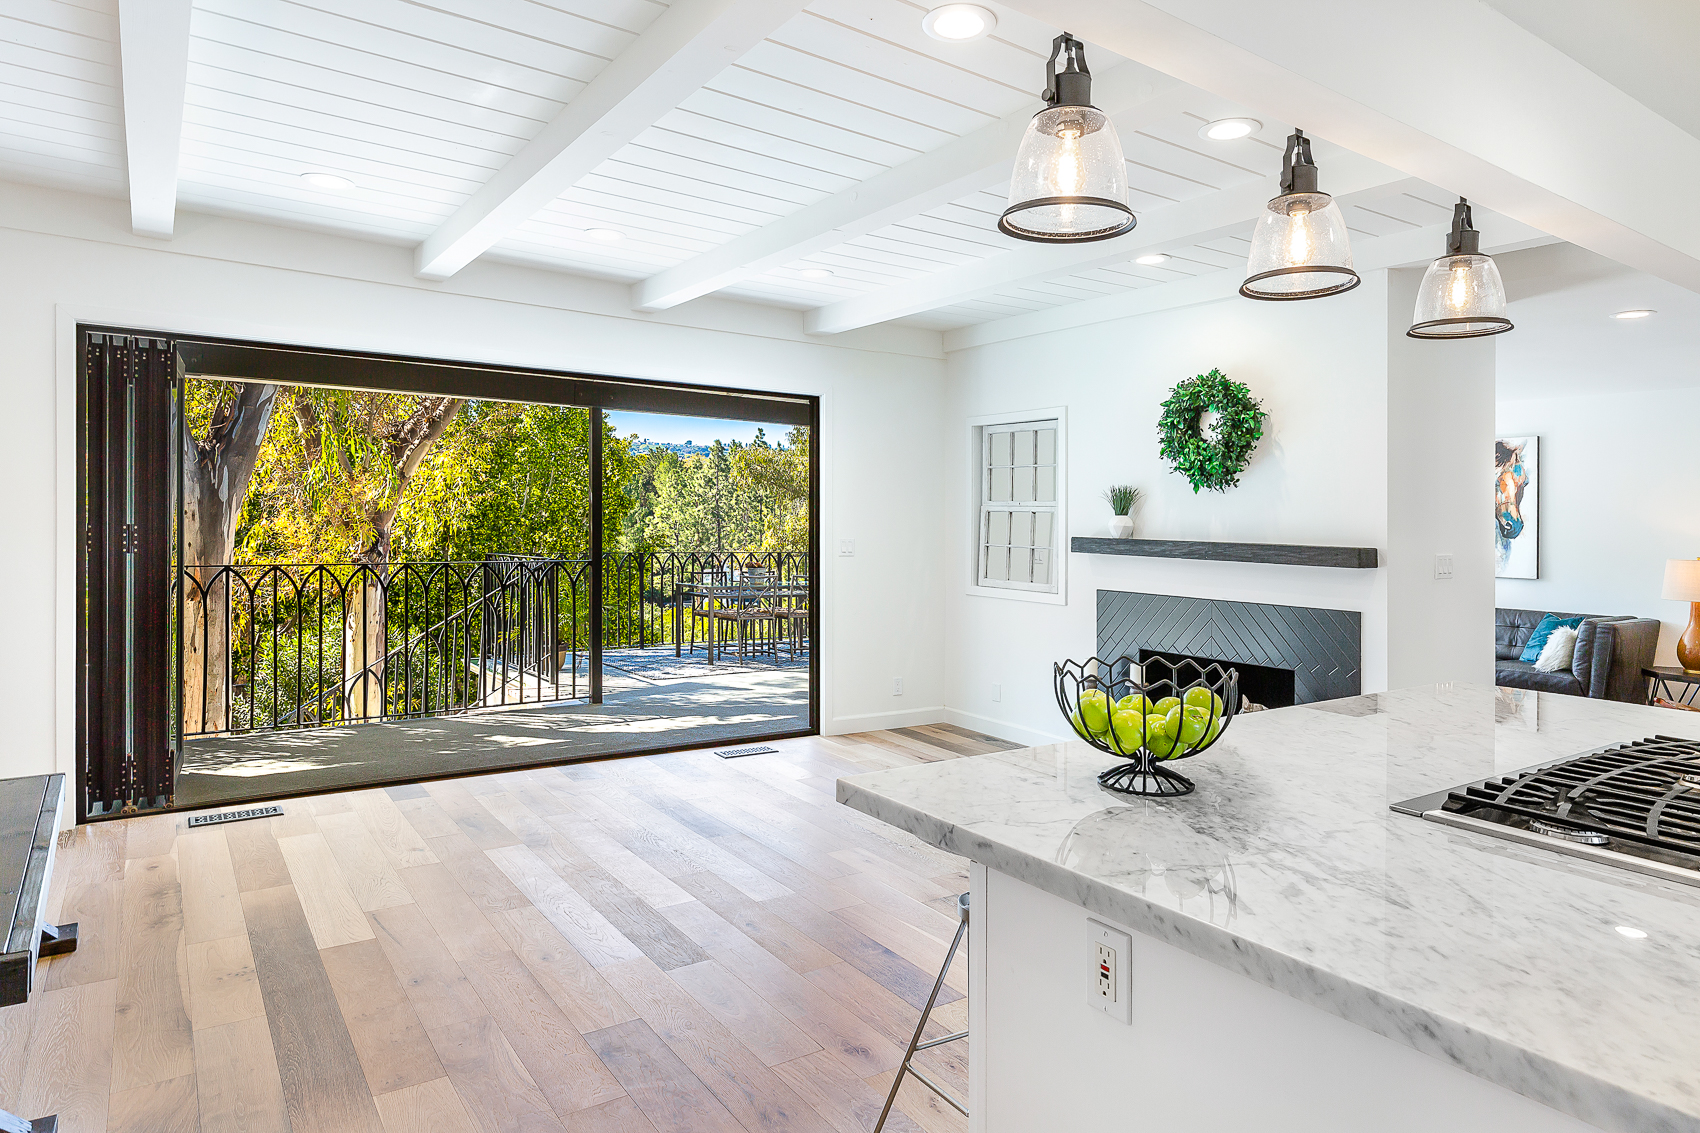 Panoramic folding doors create an indoor/outdoor flow that is the pinnacle of SoCal living. And the custom wrought iron modern farmhouse railing adds a dramatic backdrop to your dining experience.